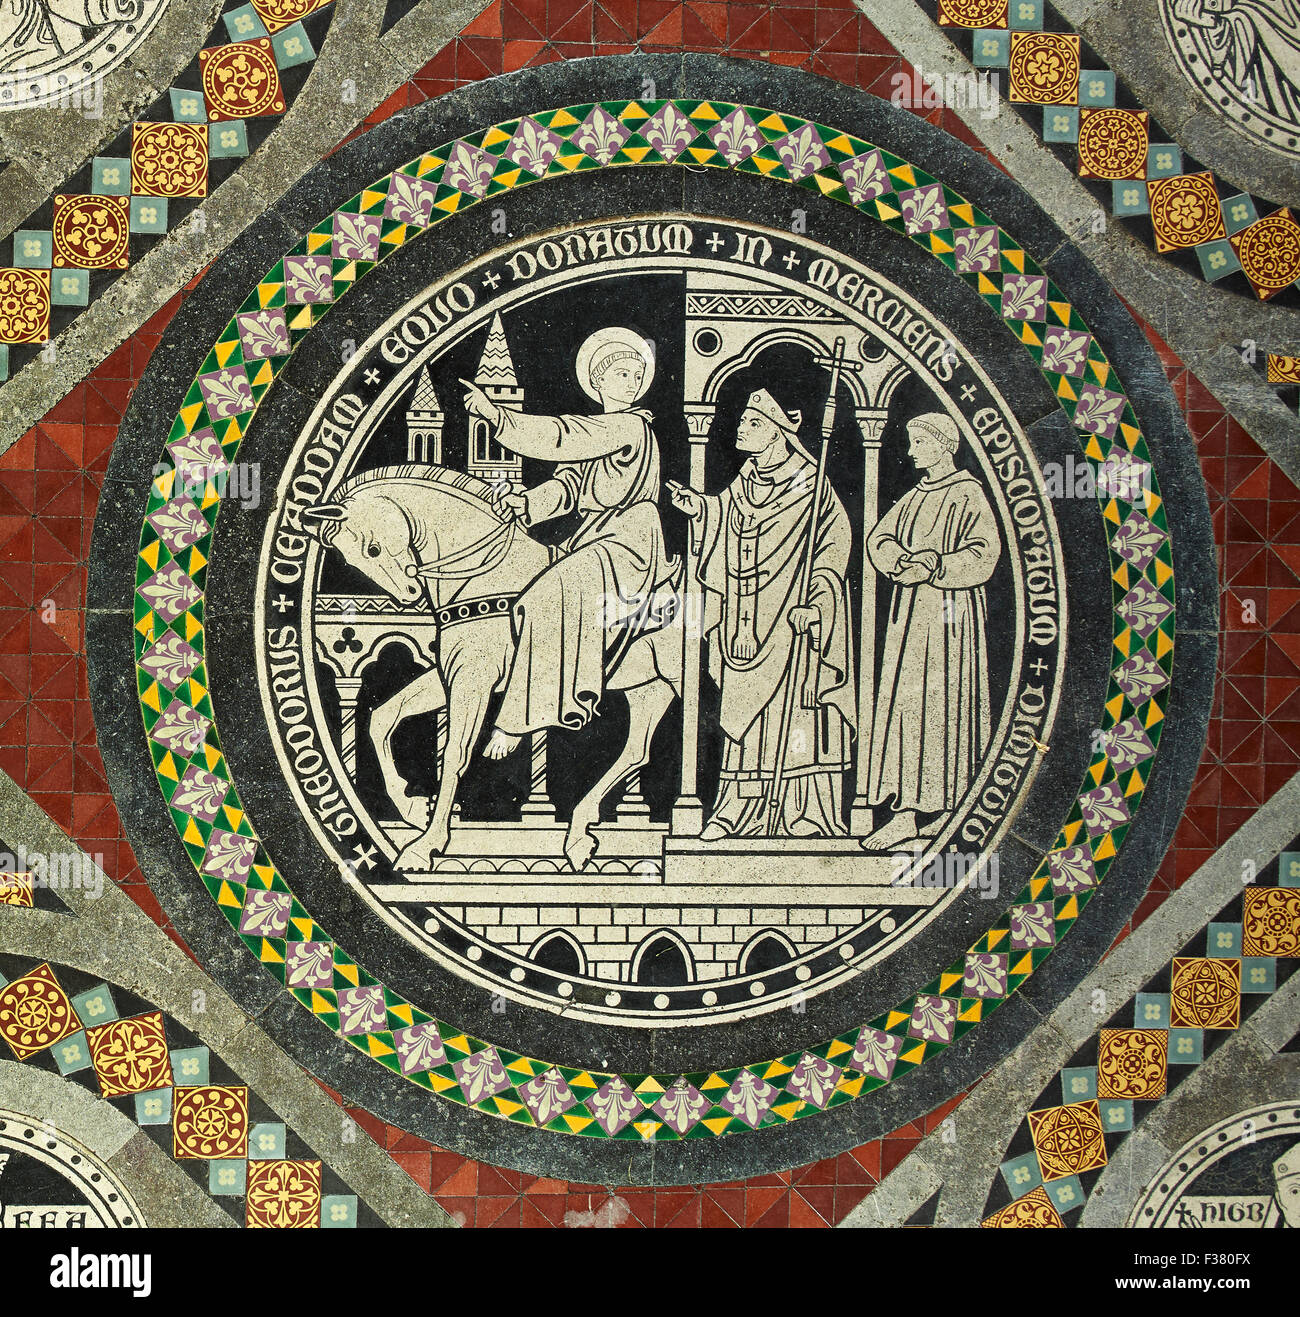 Lichfield Cathedral, St Chad tile - Stock Image